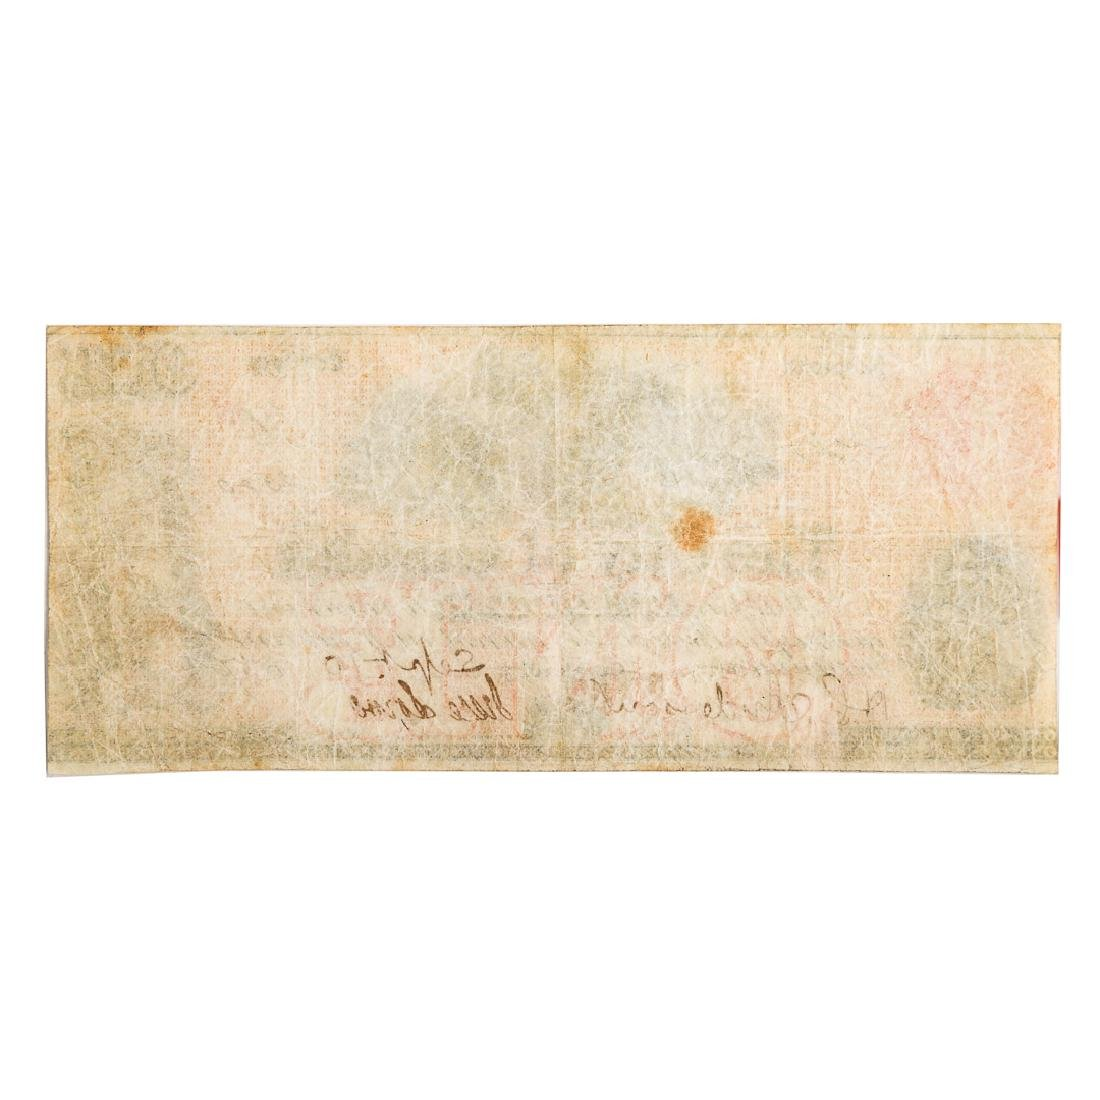 [US] 1857 $1 City of Omaha, Nebraska Territory AU+ - 2